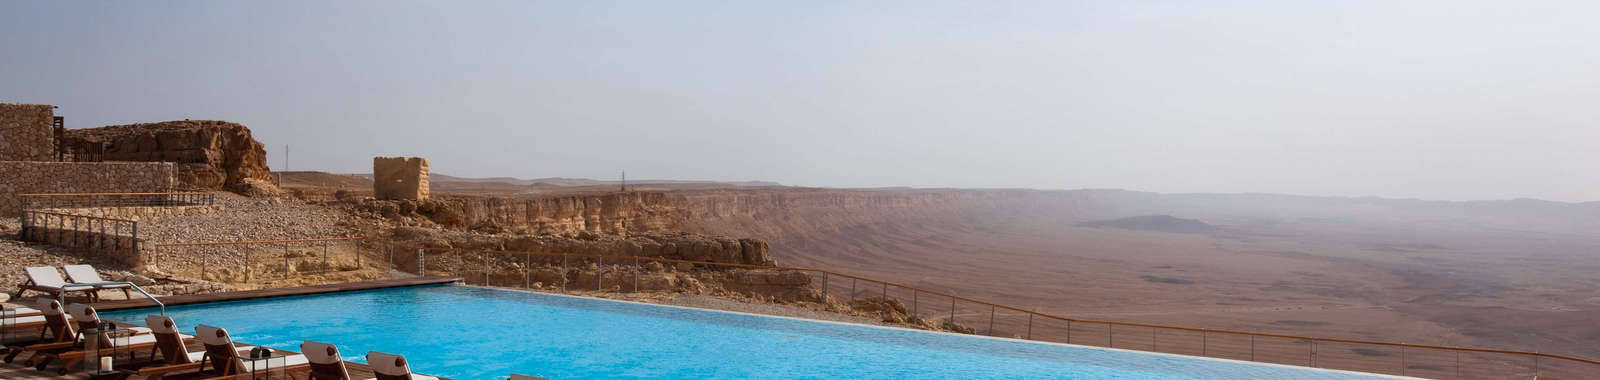 6 Beresheet Resort Mitzpe Ramon